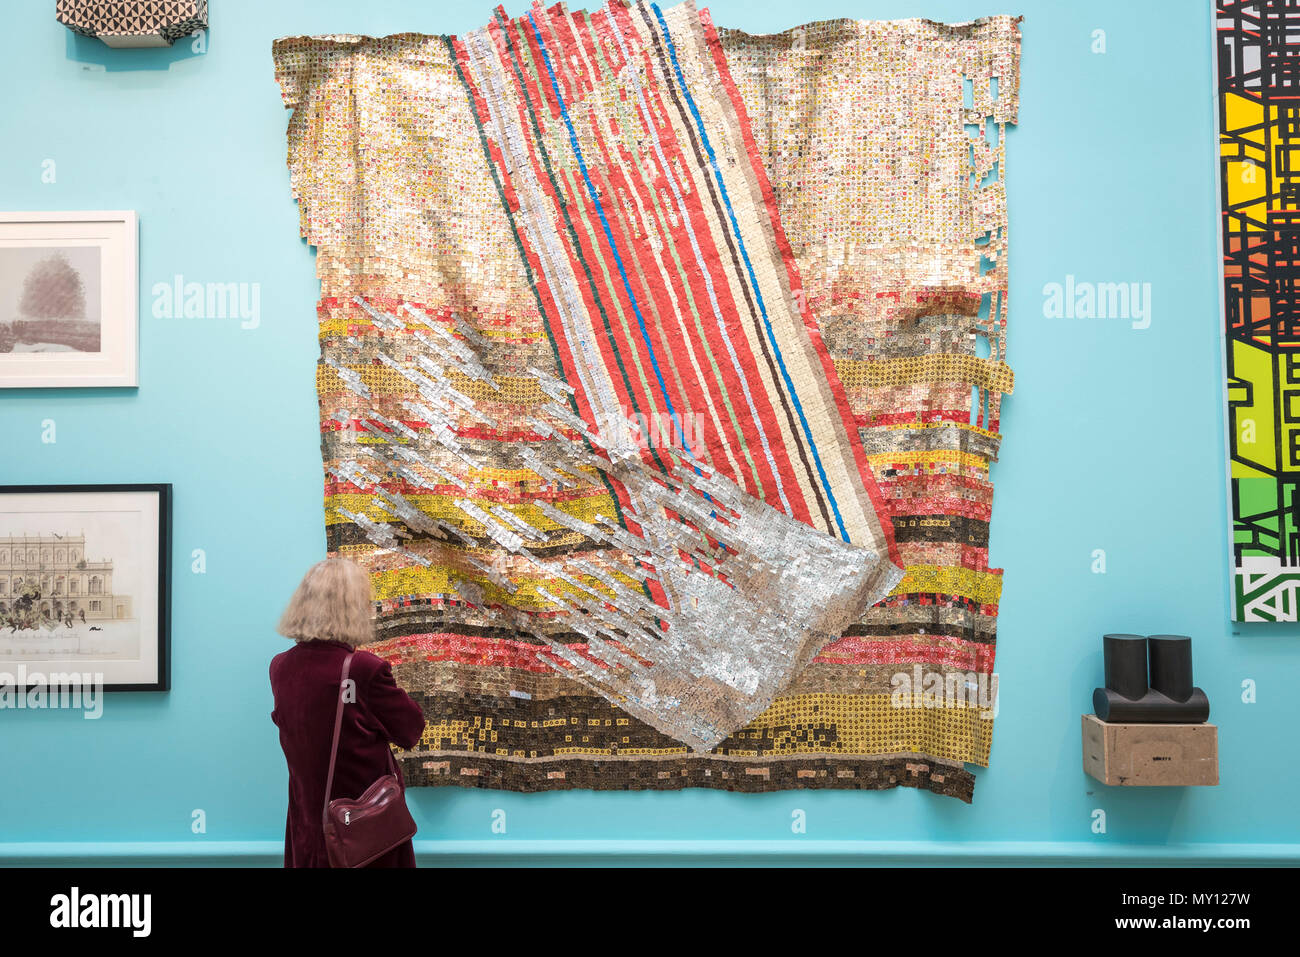 London, UK.  5 June 2018. A visitor views 'Change in Fortune' by El Anatsui Hon RA at the preview of the 250th Summer Exhibition at the Royal Academy of Arts in Piccadilly, which has been co-ordinated by Grayson Perry RA this year.  Running concurrently, is The Great Spectacle, featuring highlights from the past 250 years.  Both shows run 12 June to 19 August 2018. Credit: Stephen Chung / Alamy Live News - Stock Image